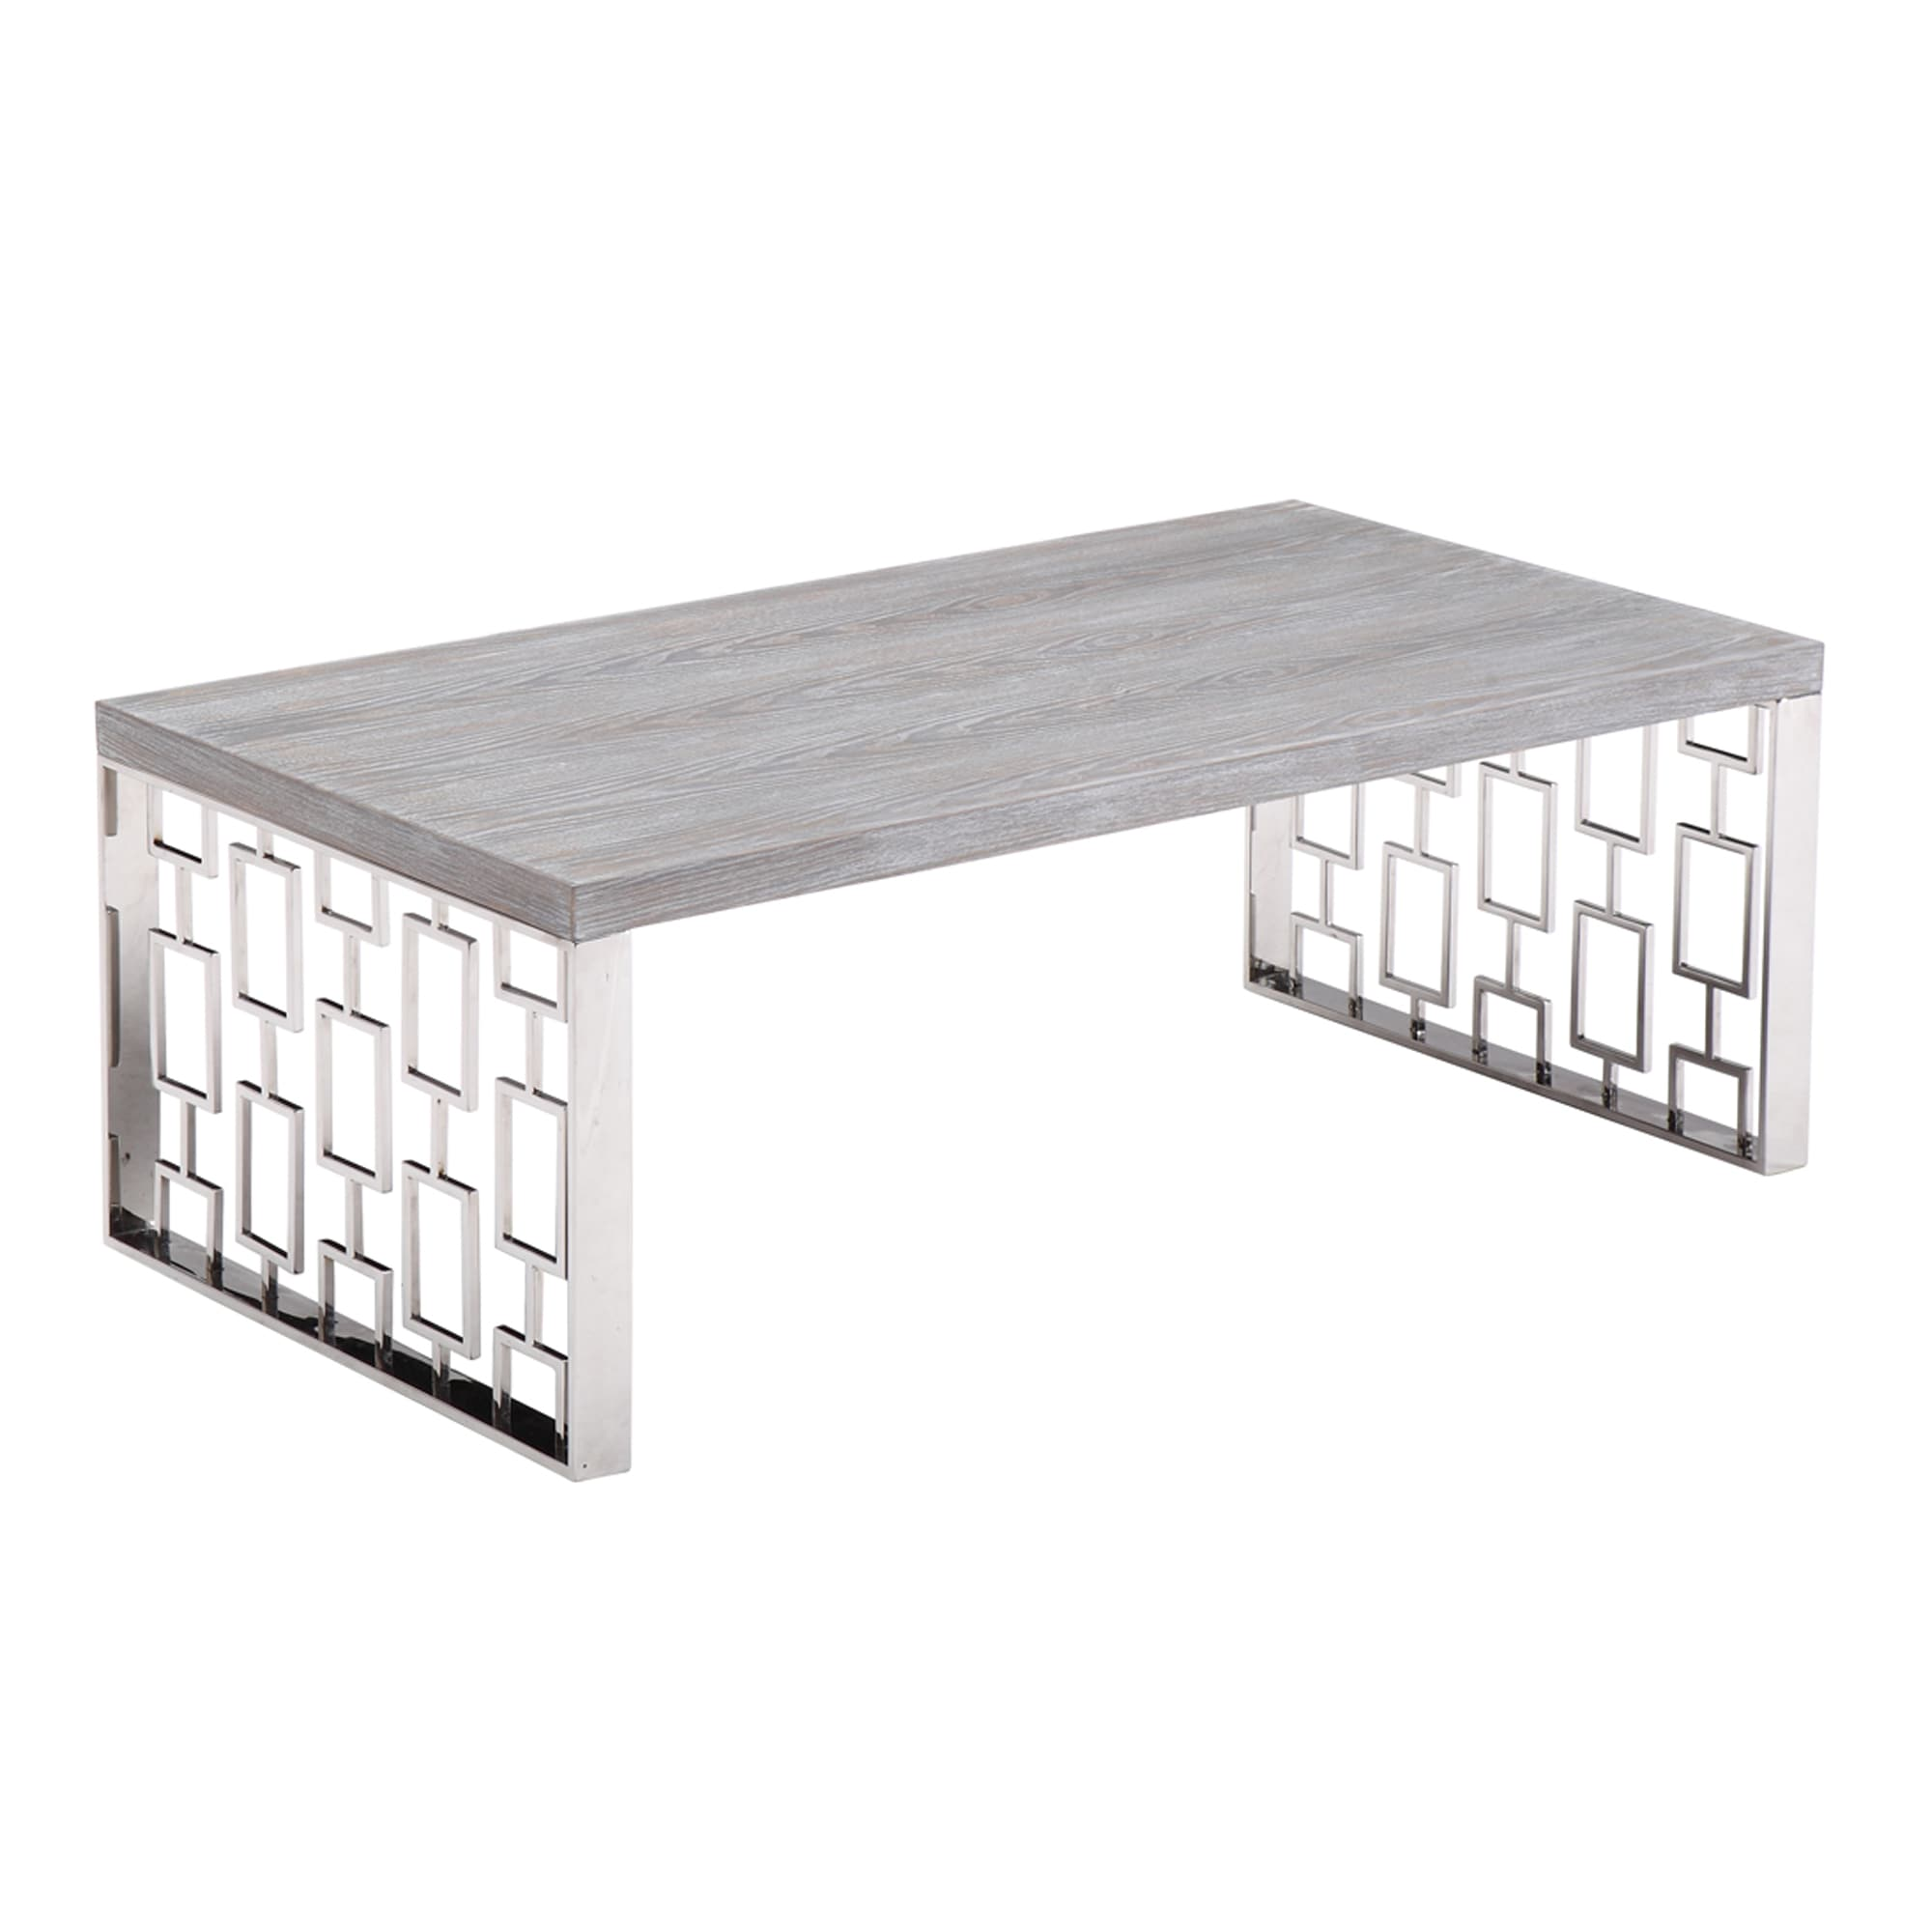 Armen Living Skyline Grey Wash Wood Coffee Table In Brushed Steel Finish    Free Shipping Today   Overstock.com   18586352